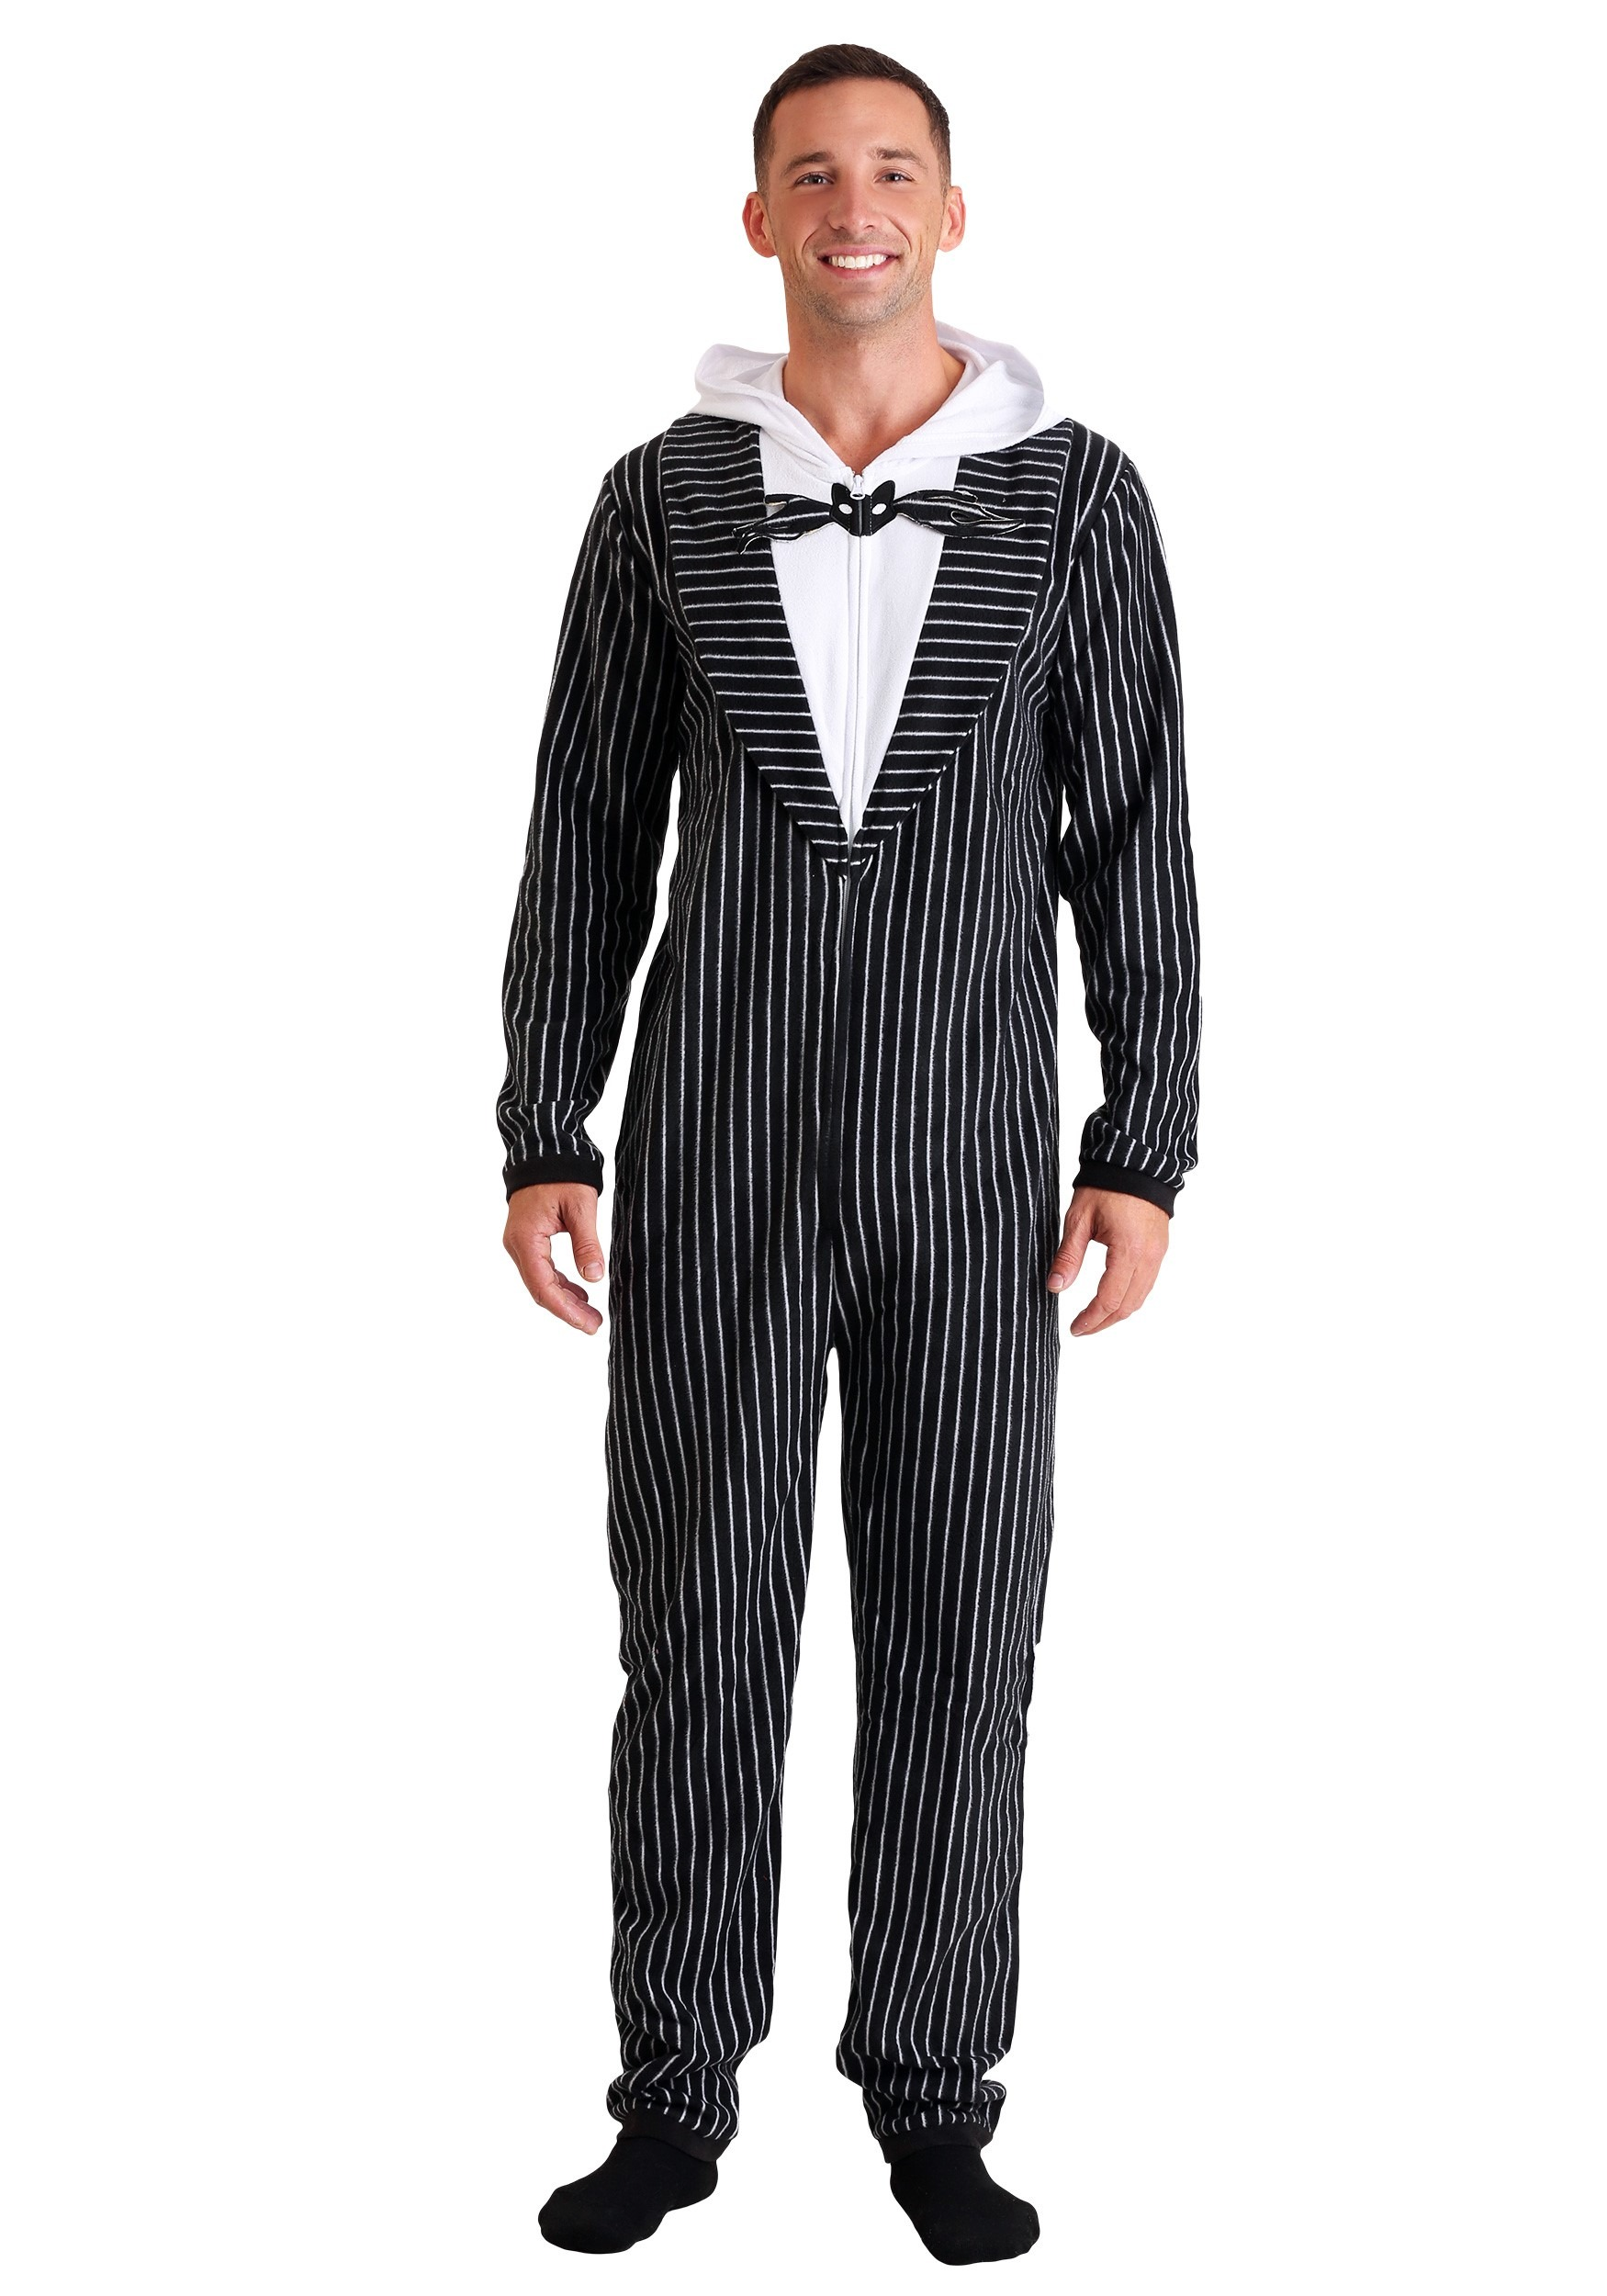 nightmare before christmas jack skellington onesie nightmare before christmas jack skellington onesie - Jack From Nightmare Before Christmas